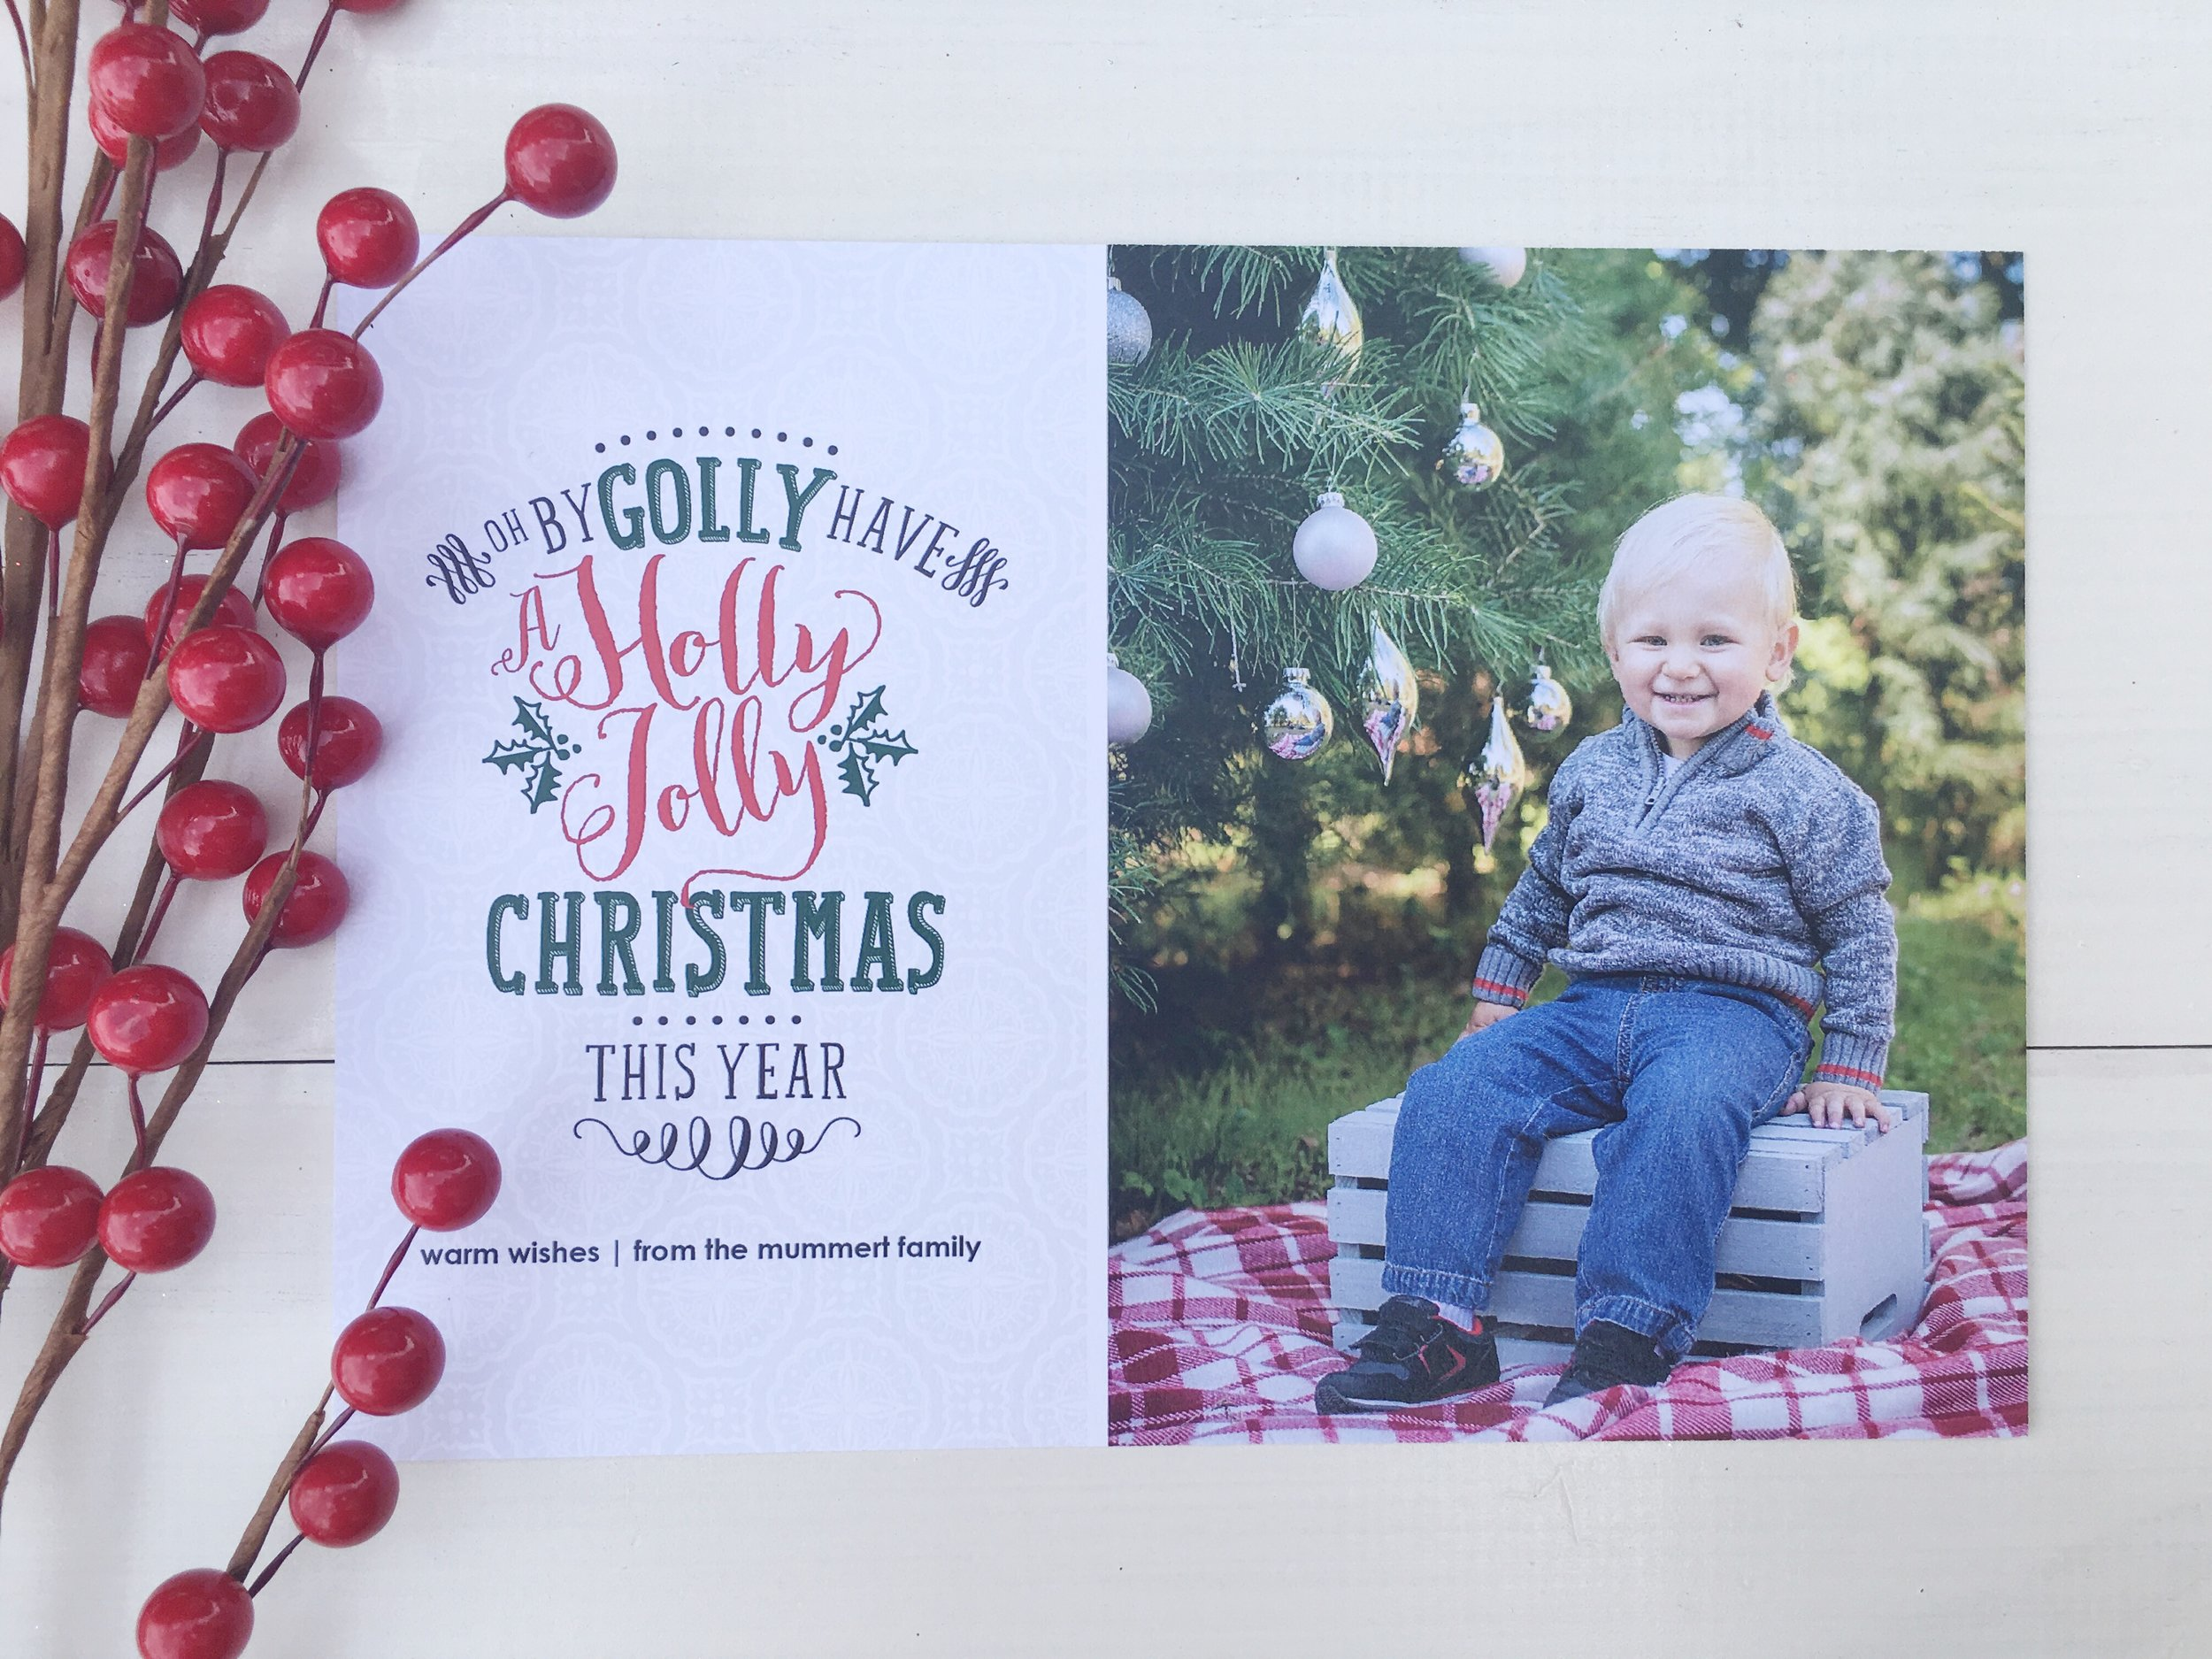 jsd holly jolly christmas photo card.jpg